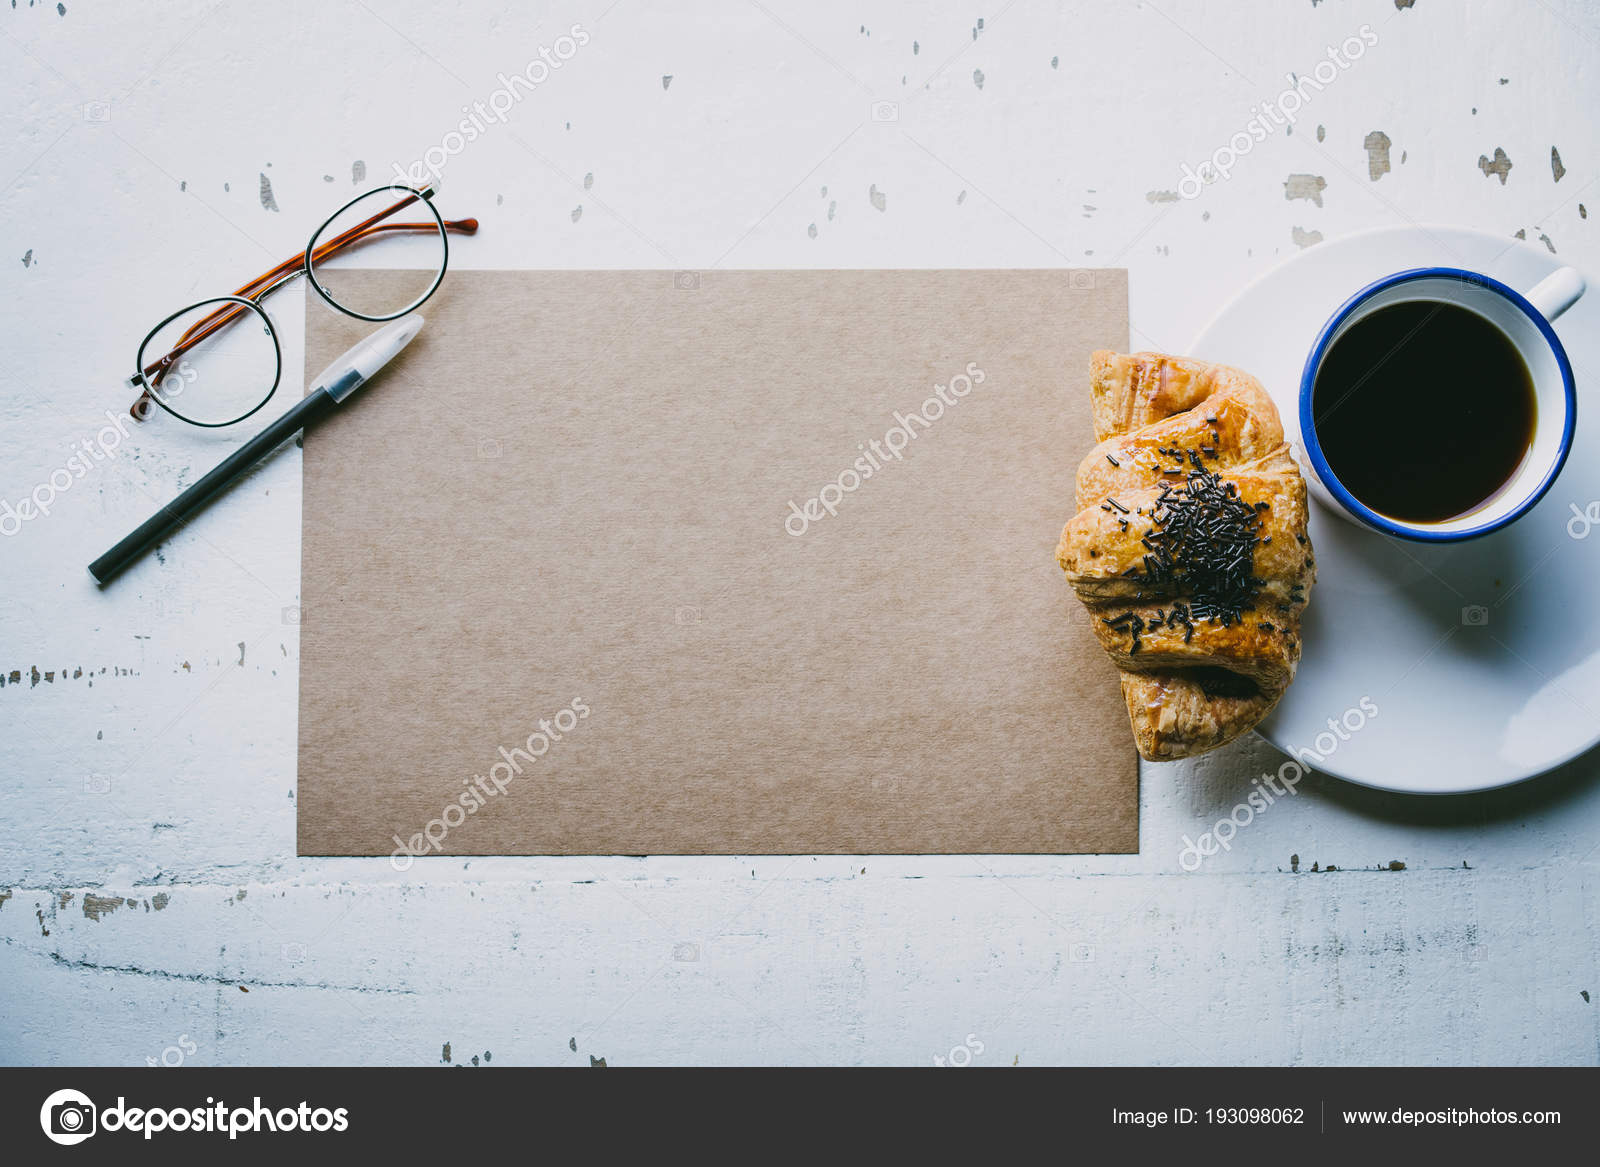 Mockup Blank Craft Sheet Of Paper Pen Eye Glasses And Morning Coffee Cup With Croissant On White Wooden Desk Business Background For Letter